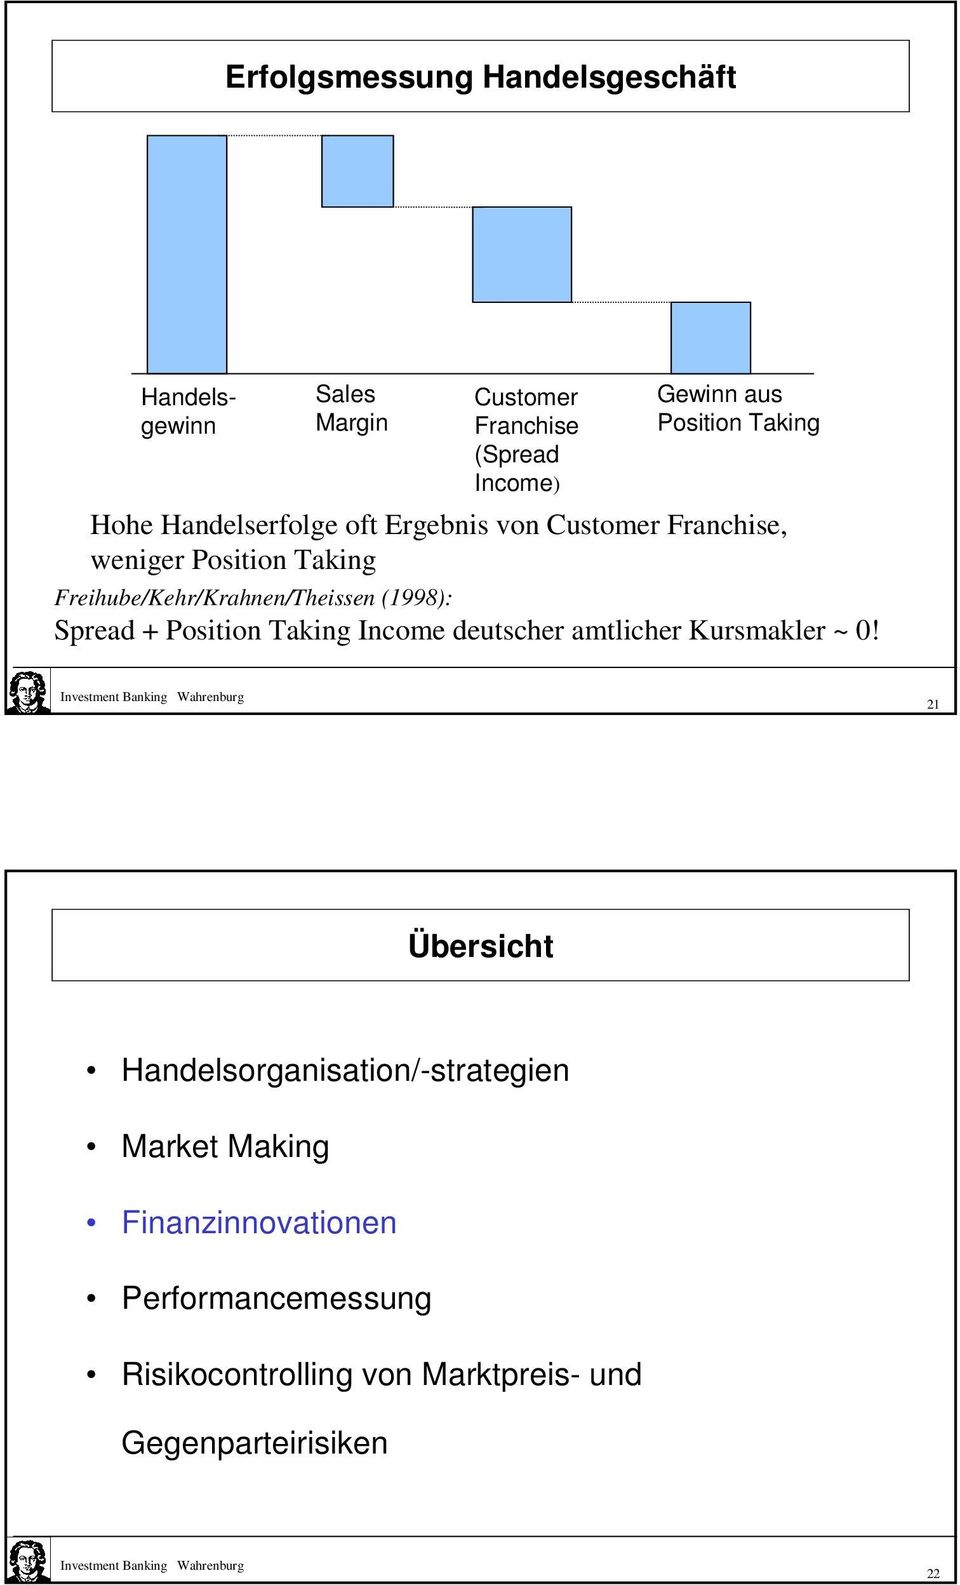 Freihube/Kehr/Krahnen/Theissen (1998): Spread + Position Taking Income deutscher amtlicher Kursmakler ~ 0!